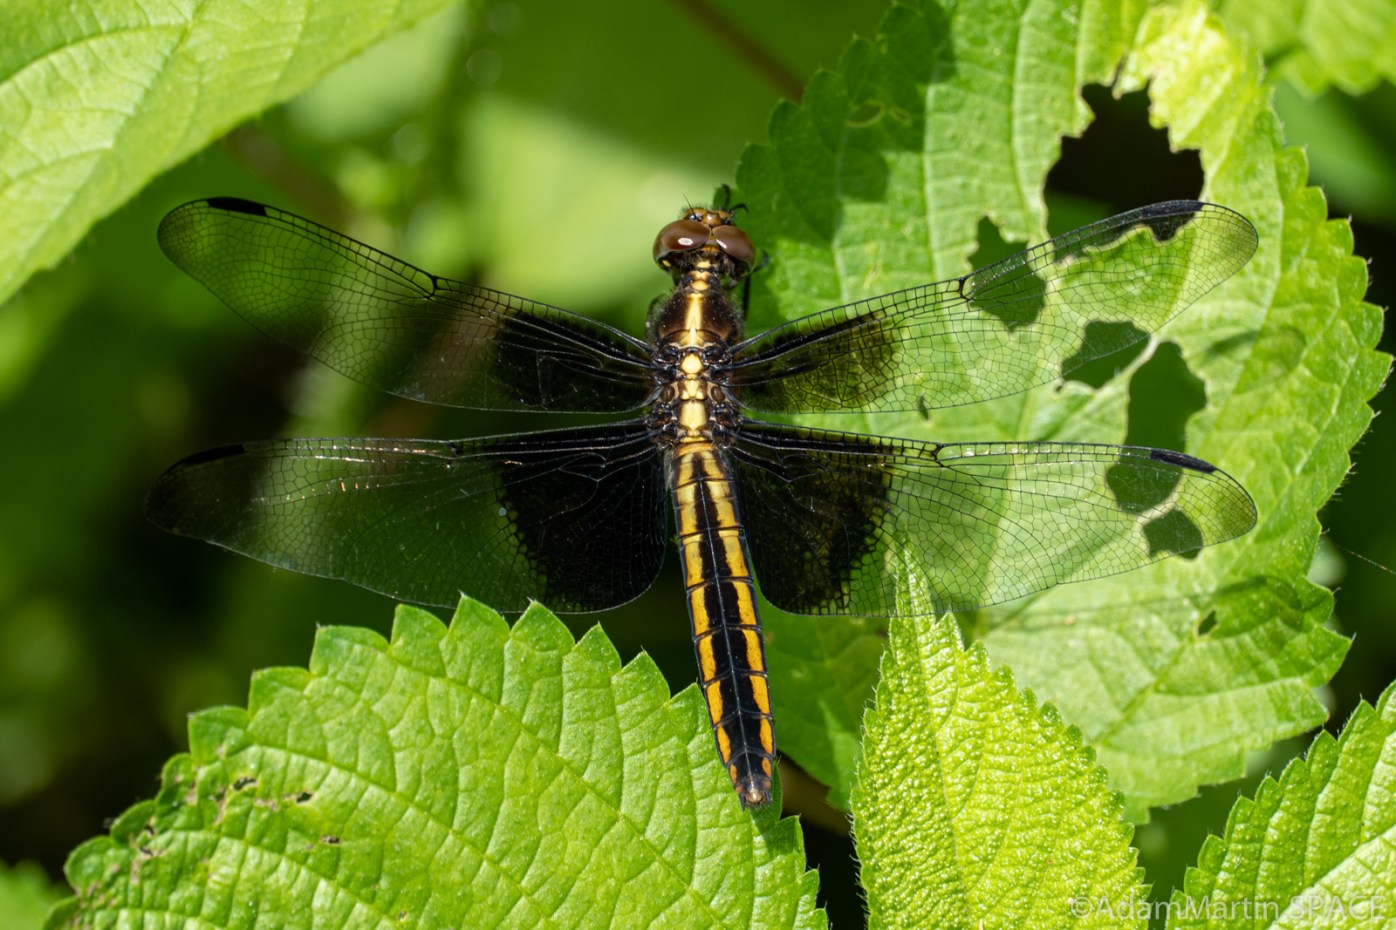 Red Cedar Waterfall - Yellow-sided skimmer dragonfly, female (Libellula flavida)